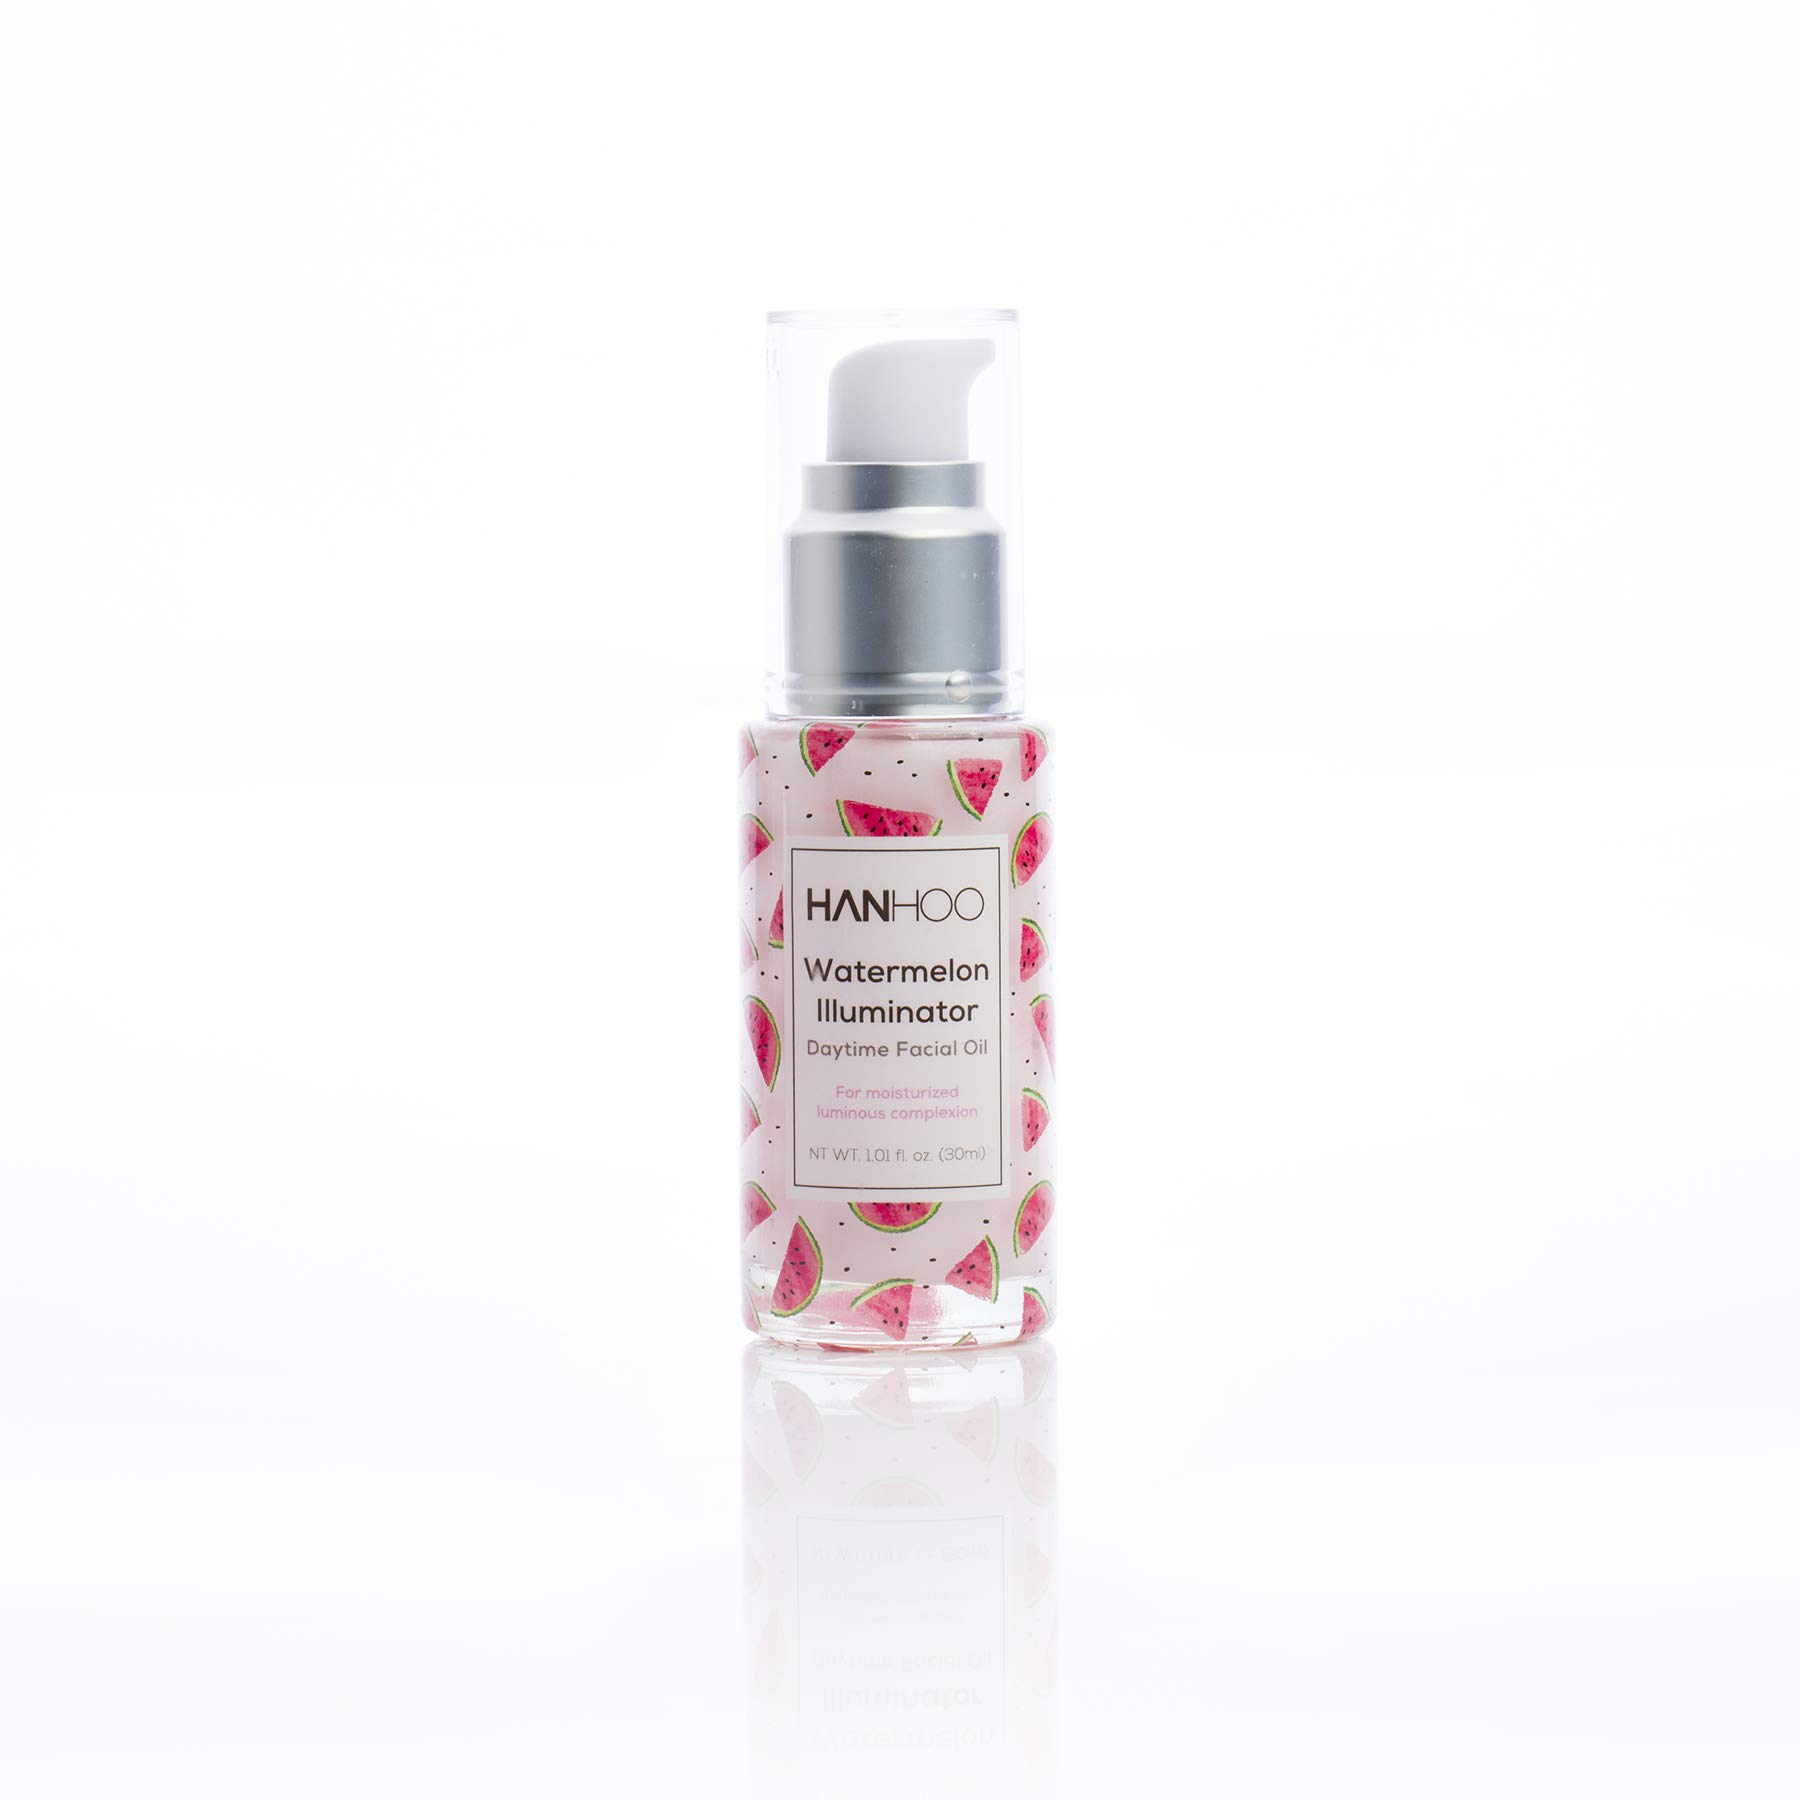 null - Hanhoo - Watermelon Illuminator Facial Serums | Nourishing and Hydrating Formula - Watermelon and Apple Extract (Daytime Facial Oil)